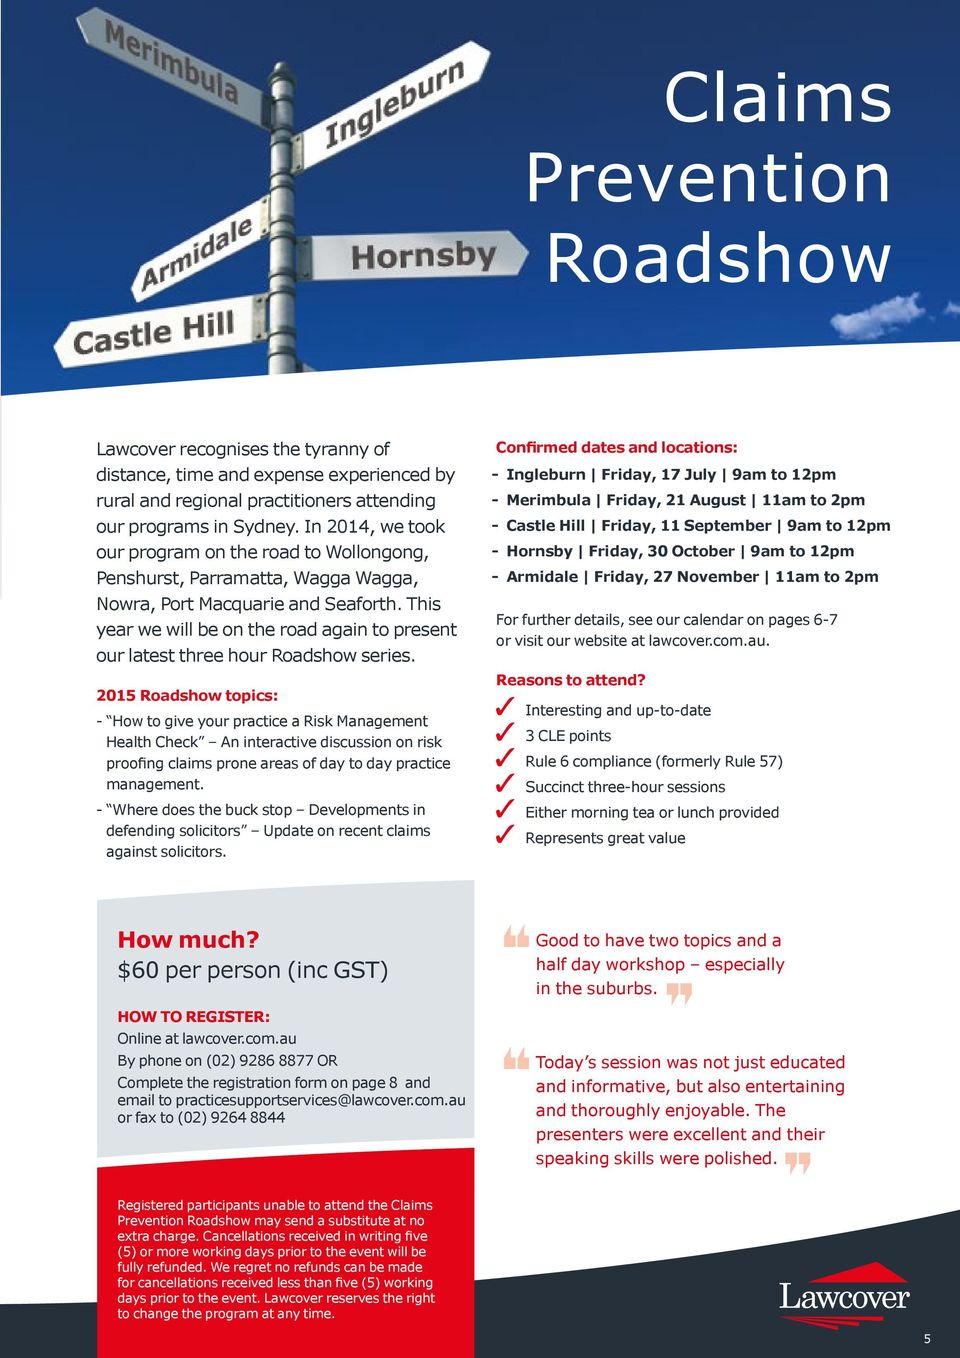 This year we will be on the road again to present our latest three hour Roadshow series.